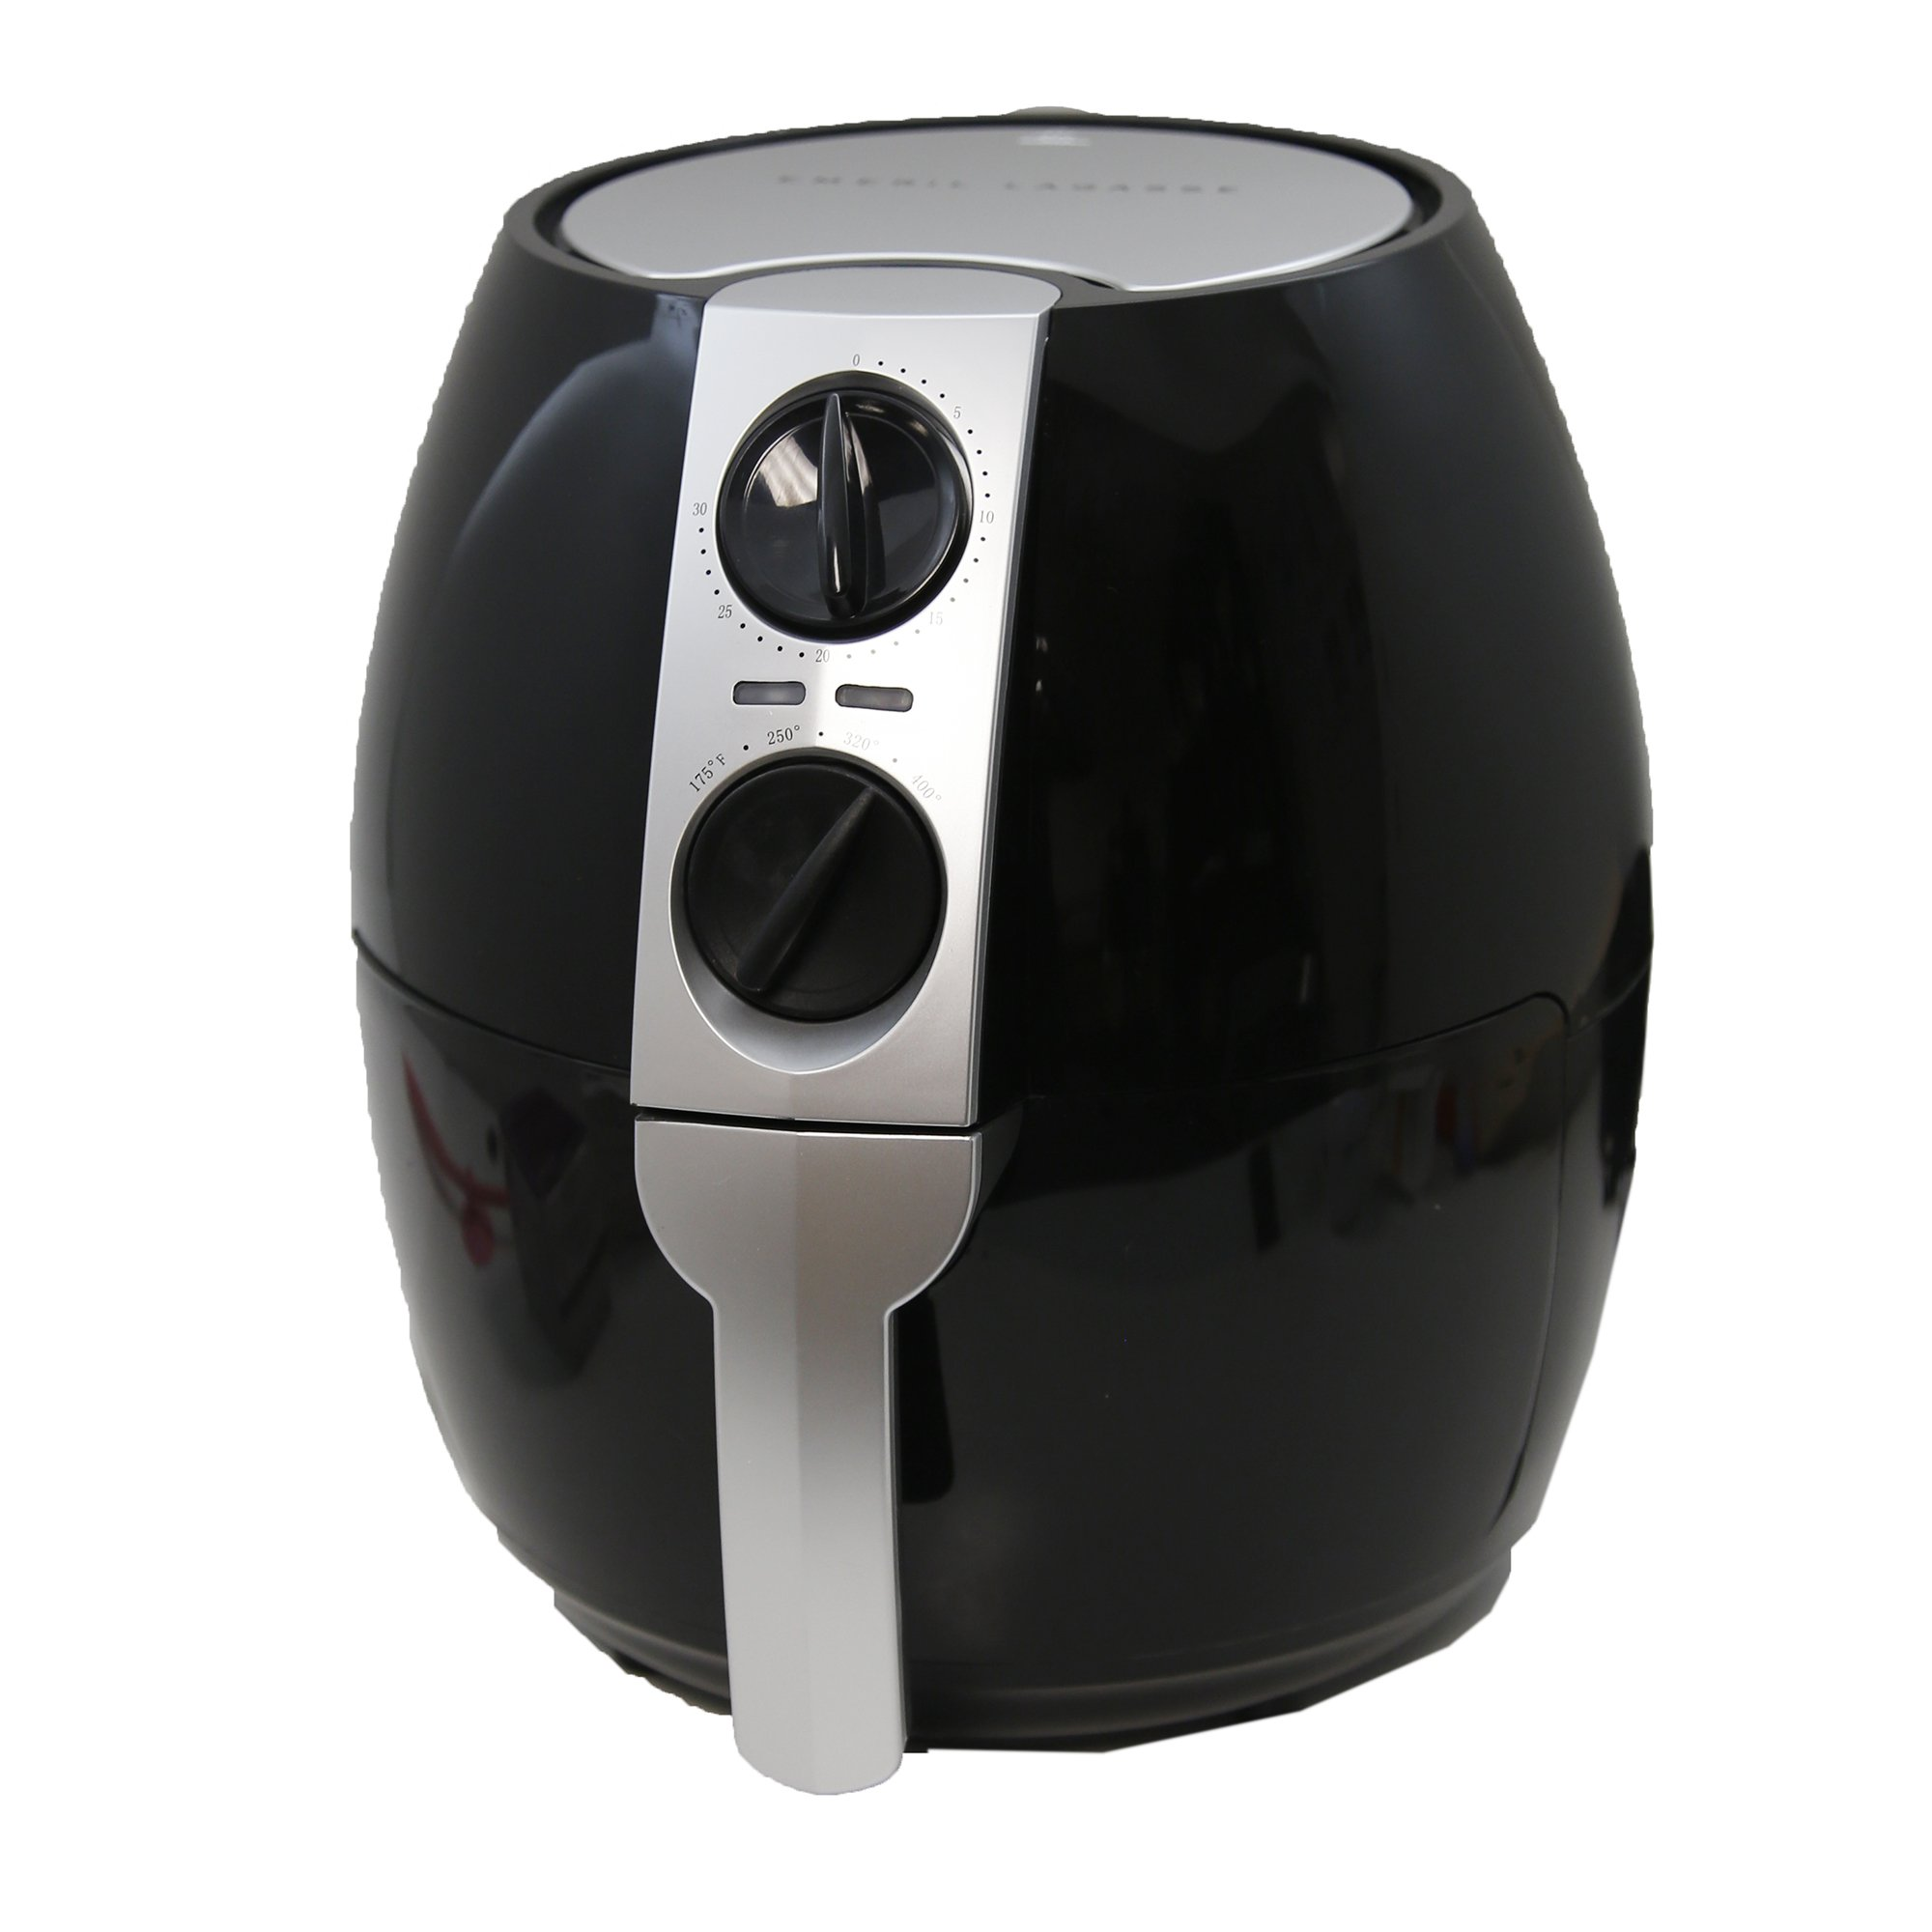 Emeril 3.75-qt Rapid Air Fryer w/2-in-1 Basket & Accessories -Black